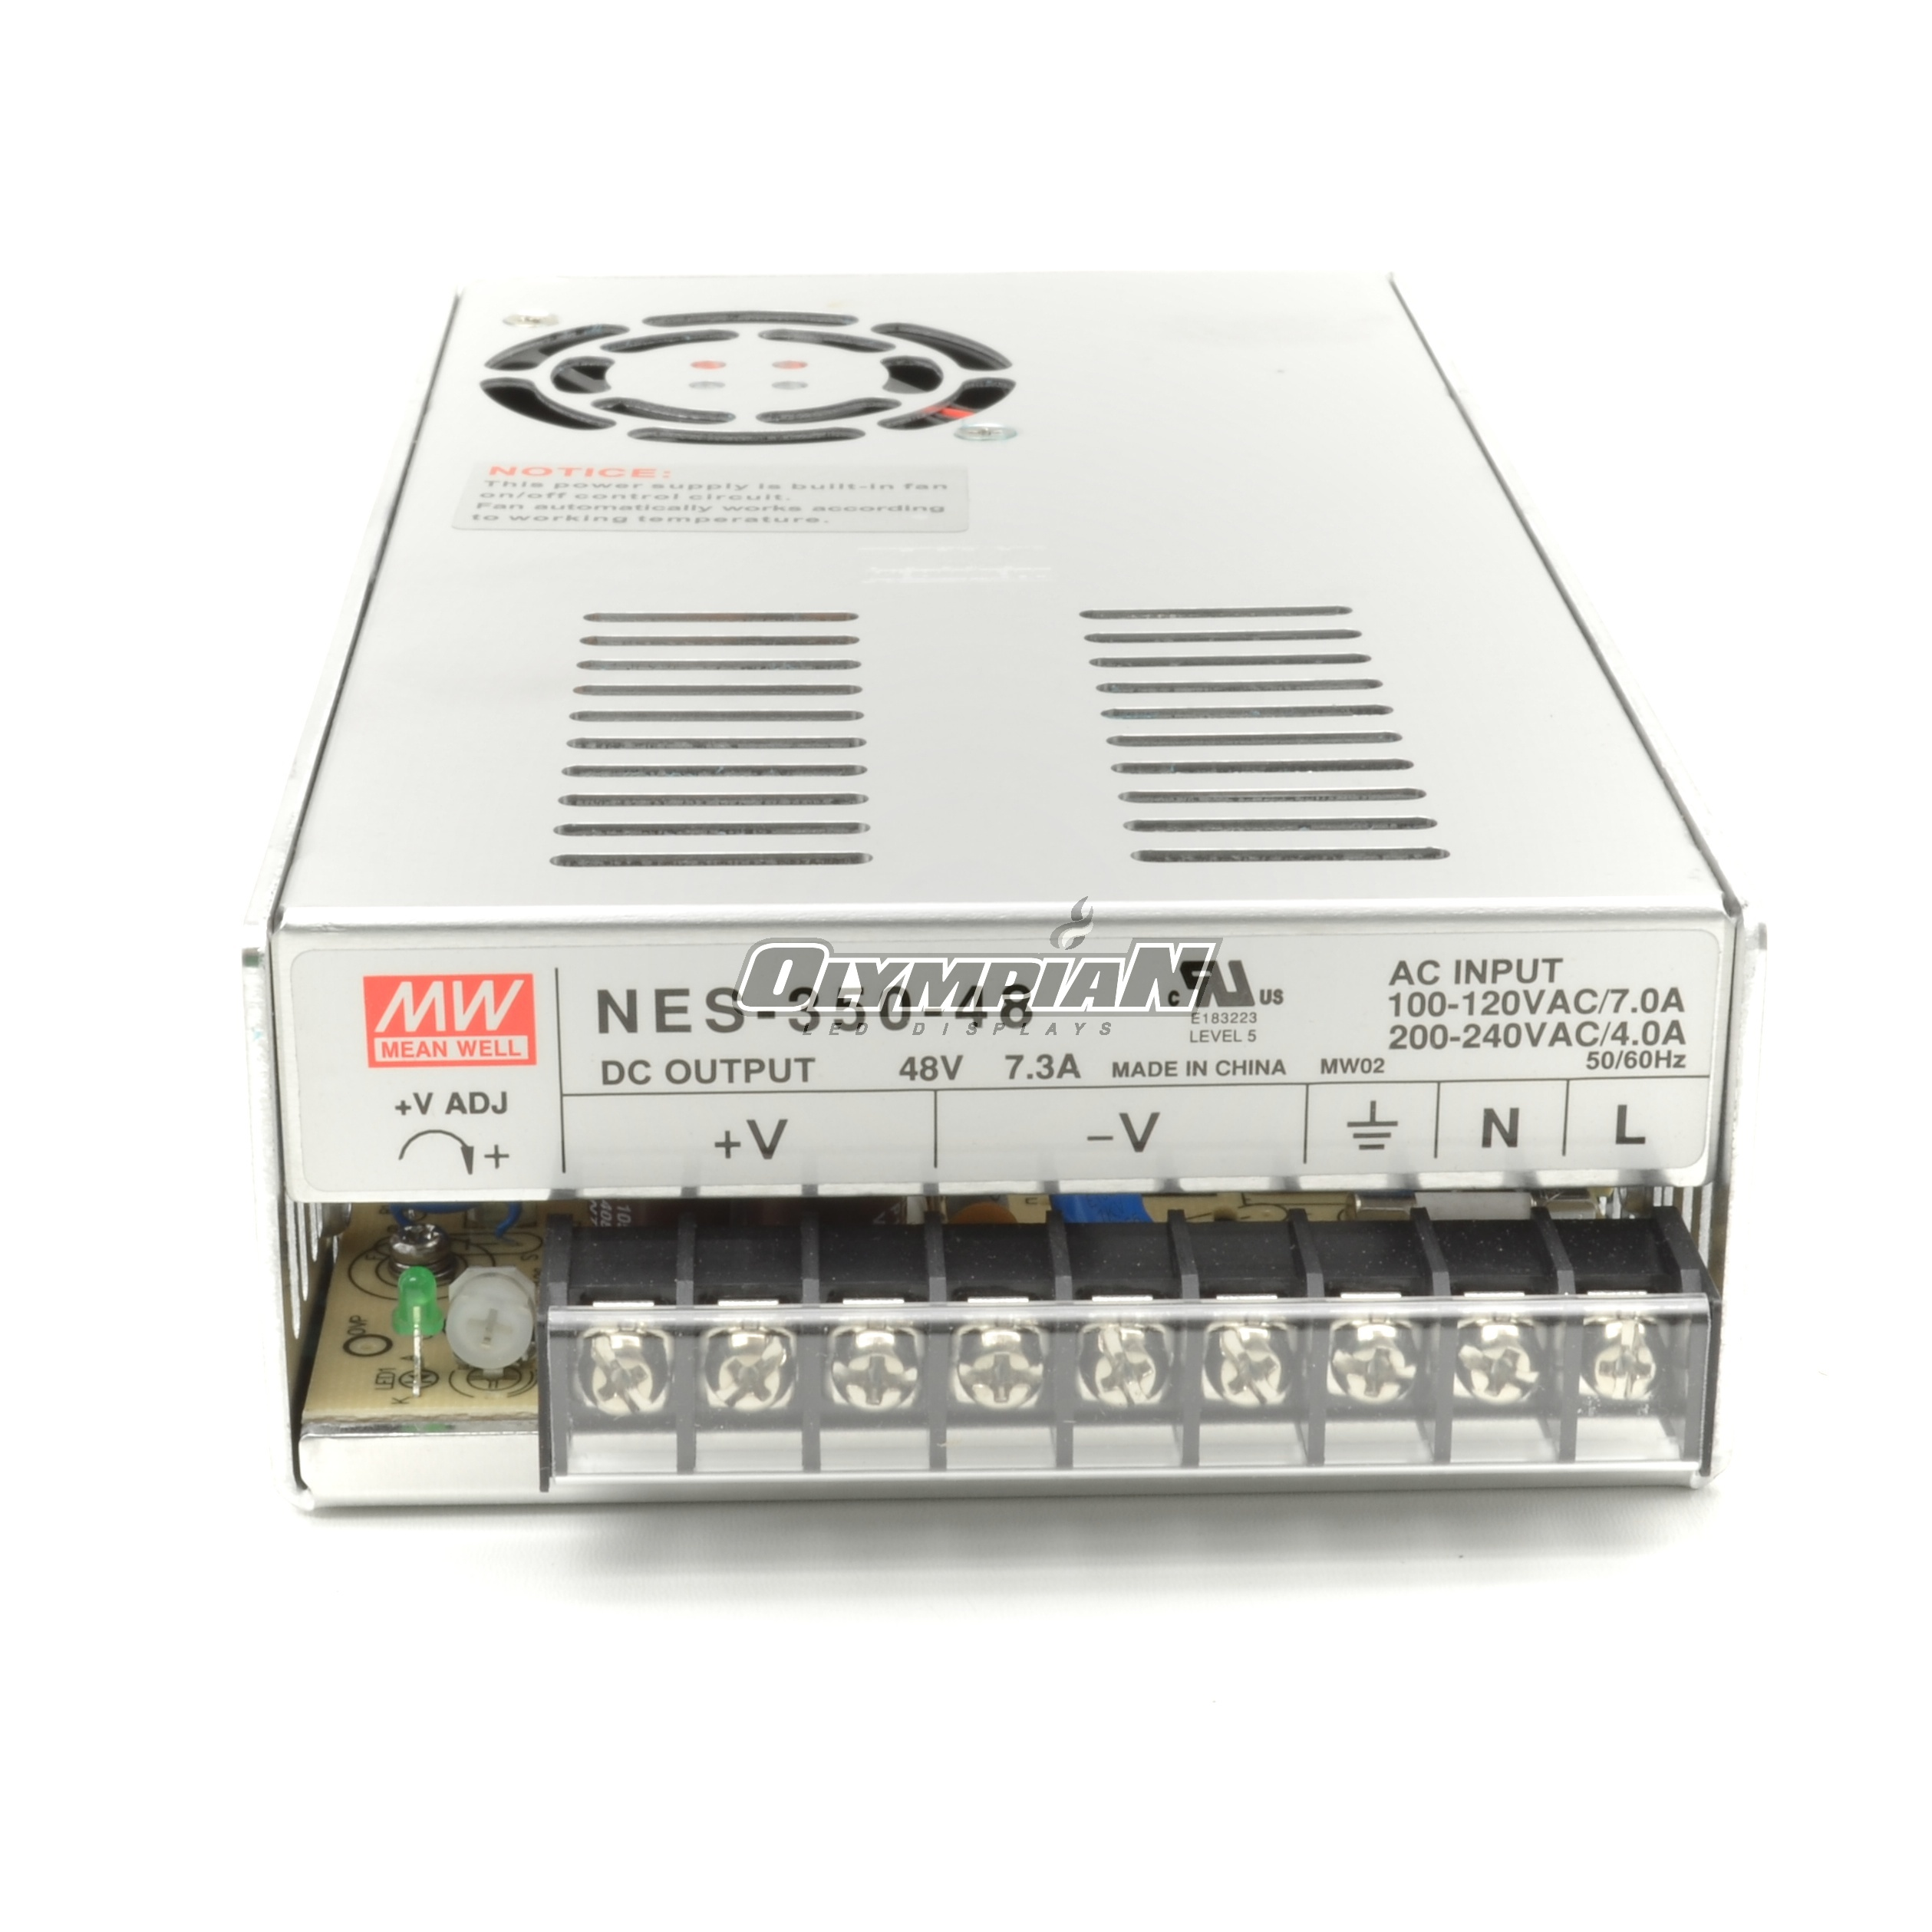 Meanwell NES-350-48 350W 7.3A 48V Power Supply